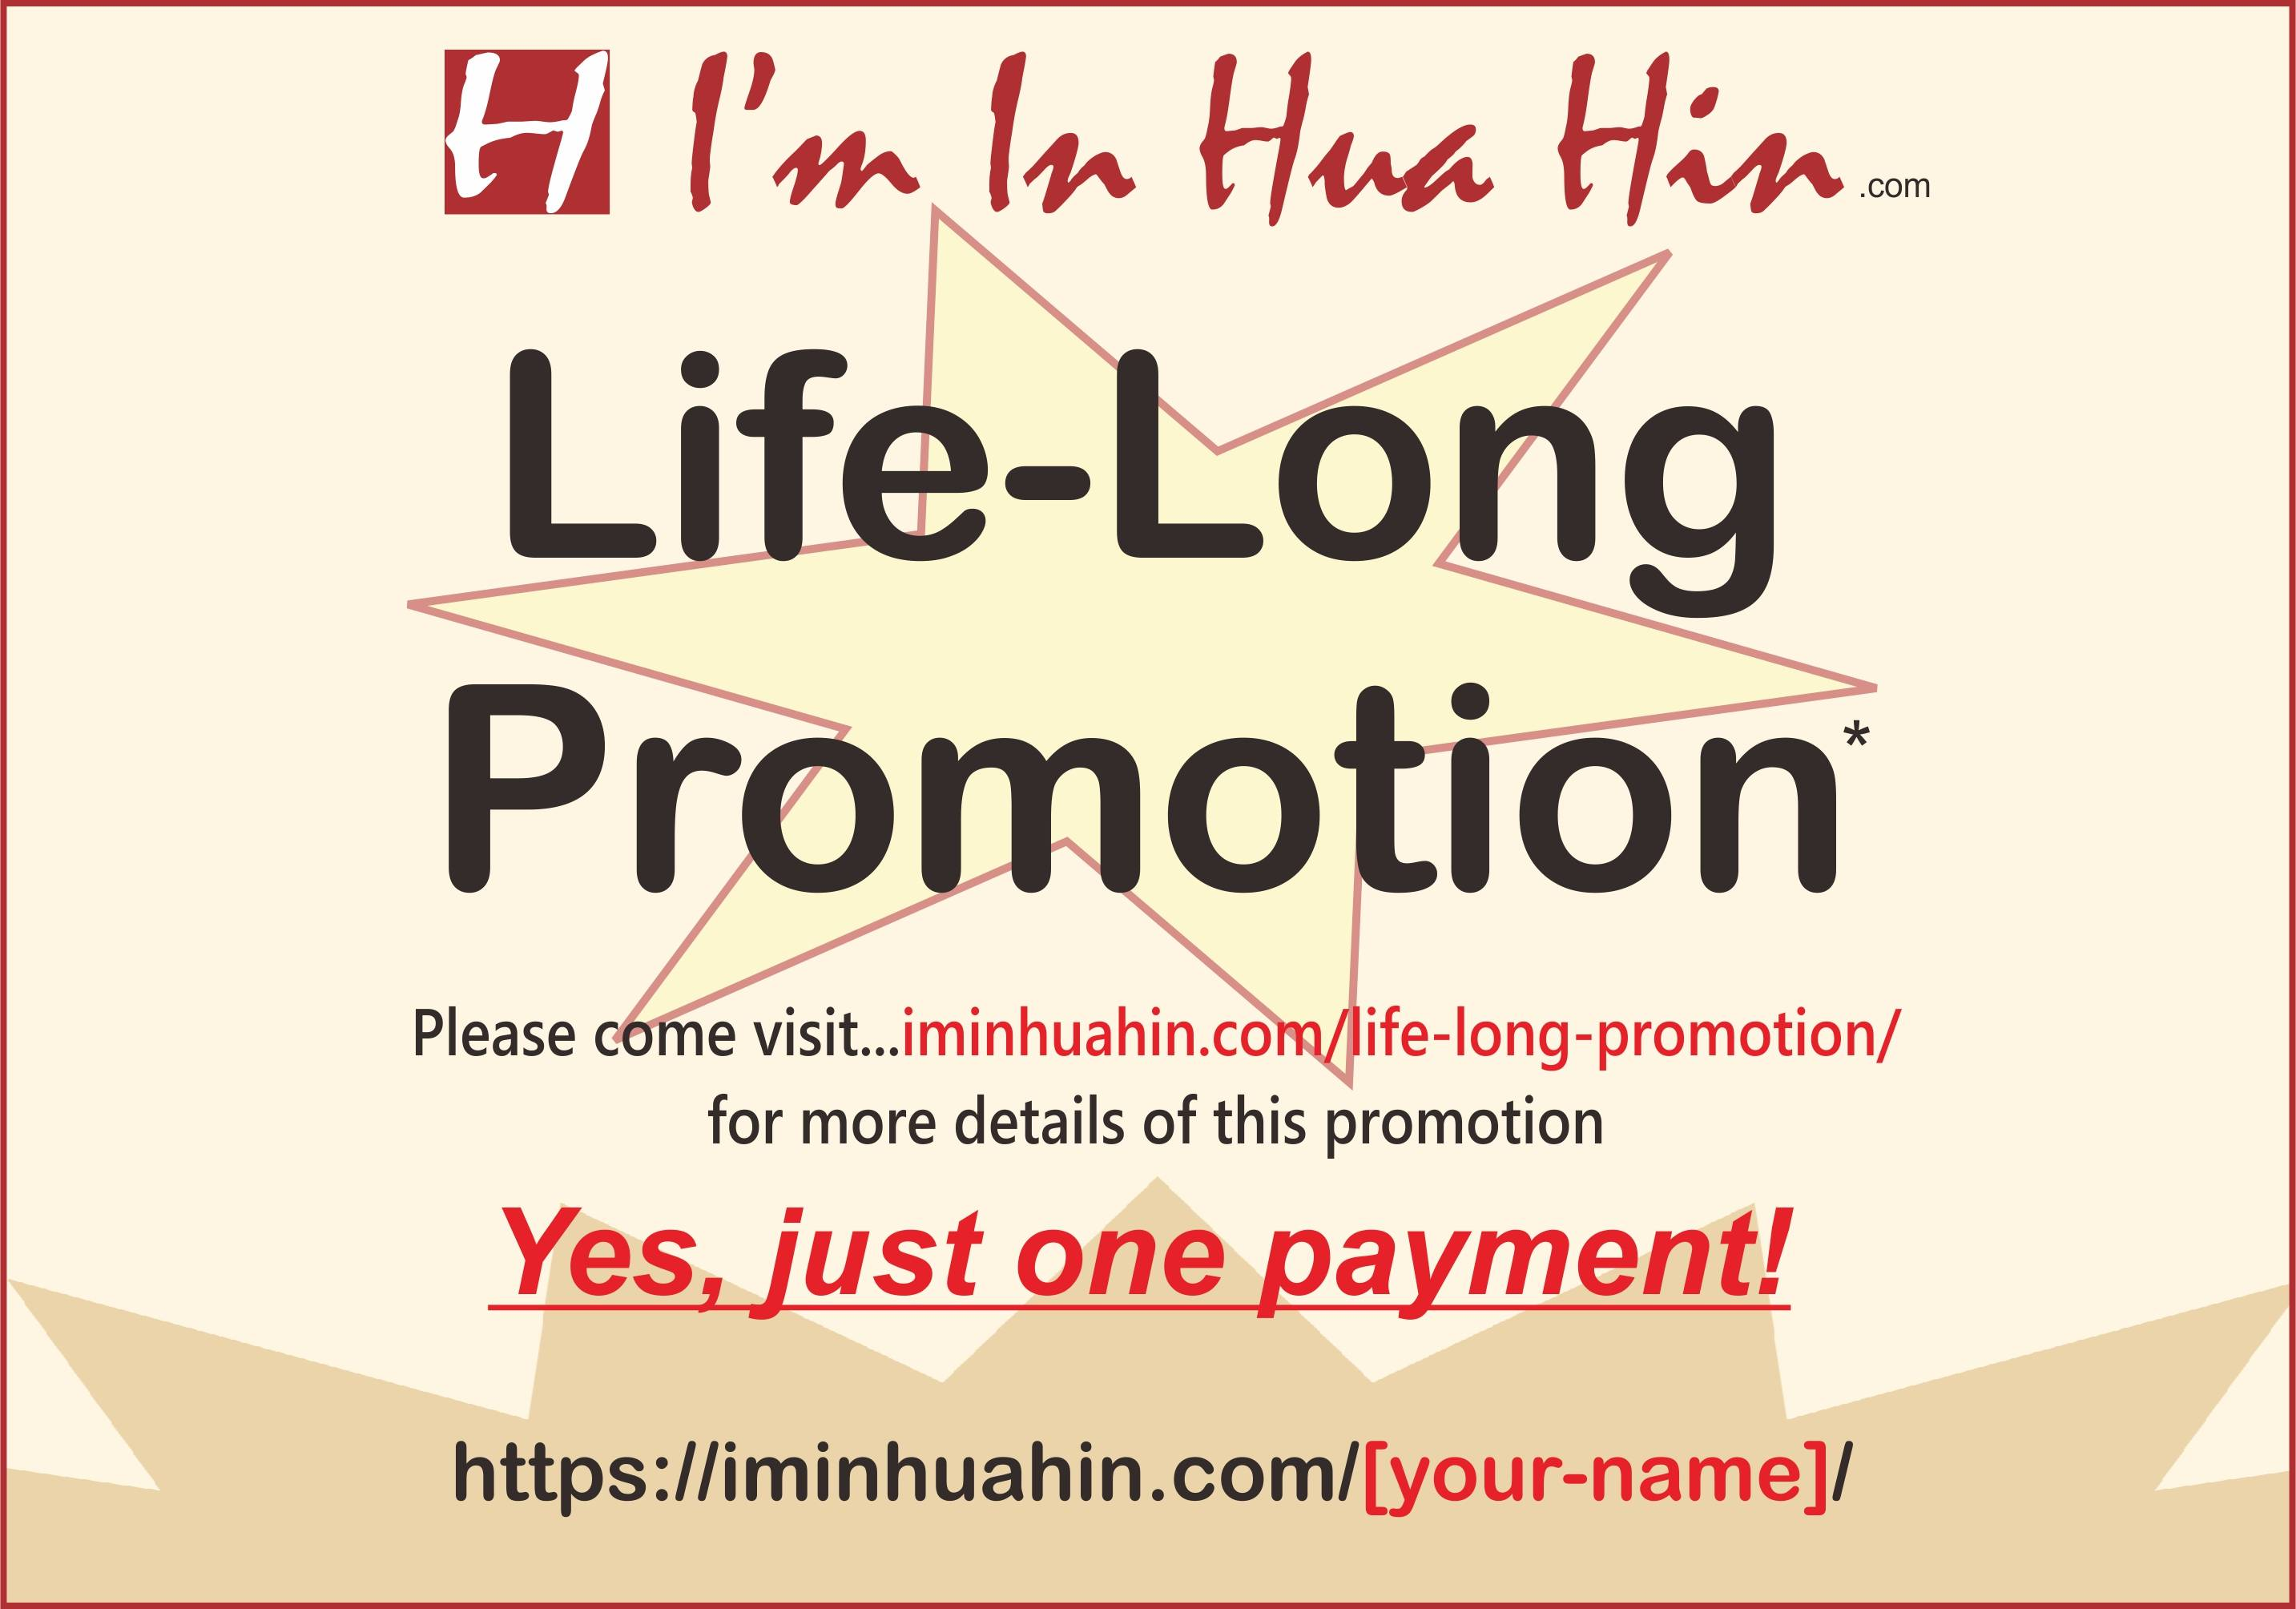 life-long promotion text with star background